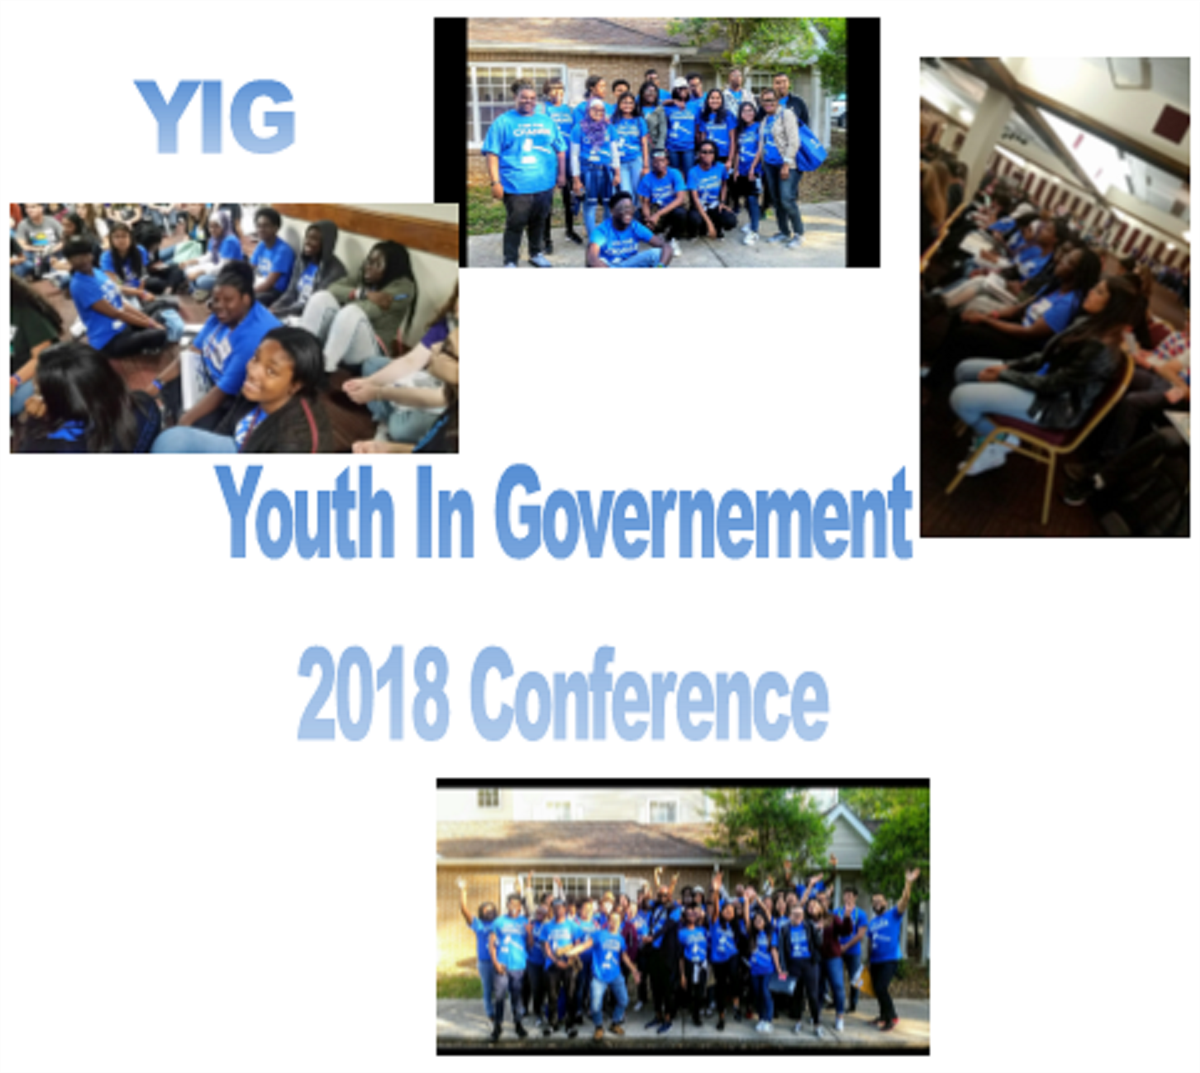 Youth In Government Conference 2018